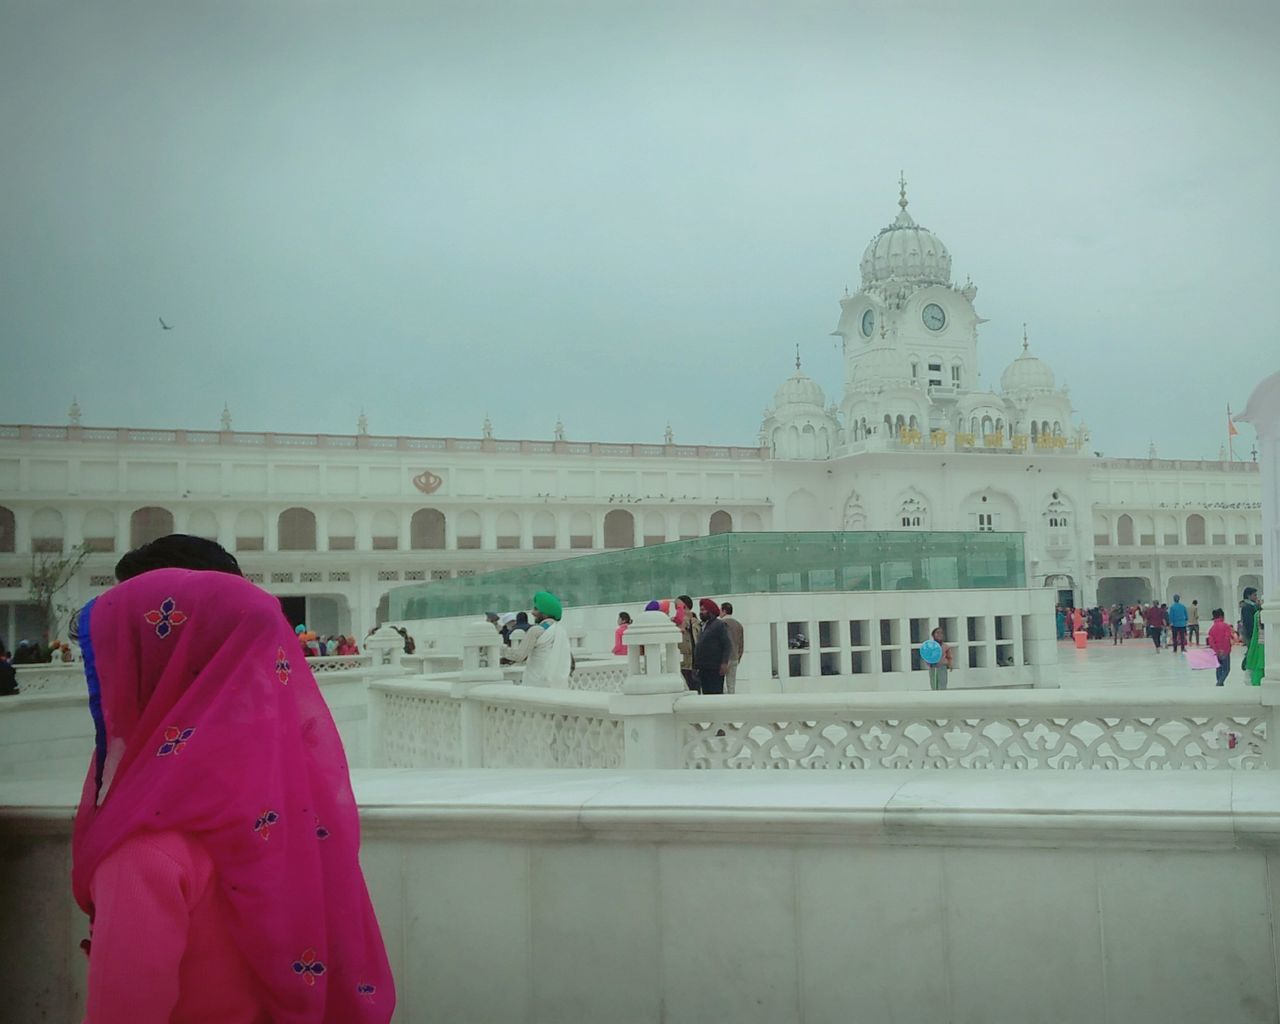 People Sky Outdoors Adult Day Adults Only Cultural Heritage Place Of Worship Reflection Travel Destinations Warming The Soul Adapted To The City Me, My Camera And I Adult Only Women Focus On Foreground Golden Temple Amritsardairies💕 Satnam_waheguru